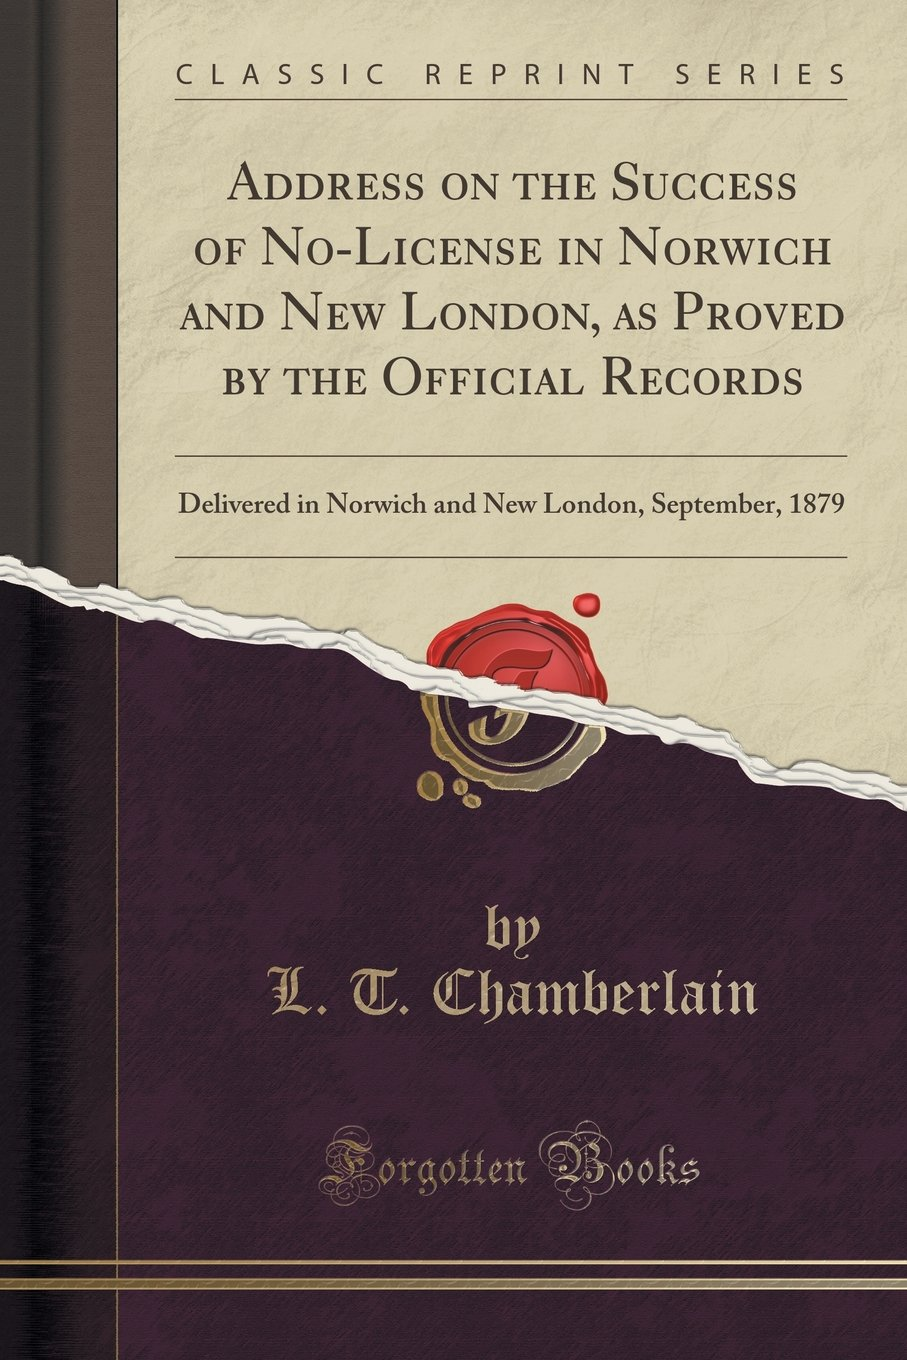 Download Address on the Success of No-License in Norwich and New London, as Proved by the Official Records: Delivered in Norwich and New London, September, 1879 (Classic Reprint) ebook